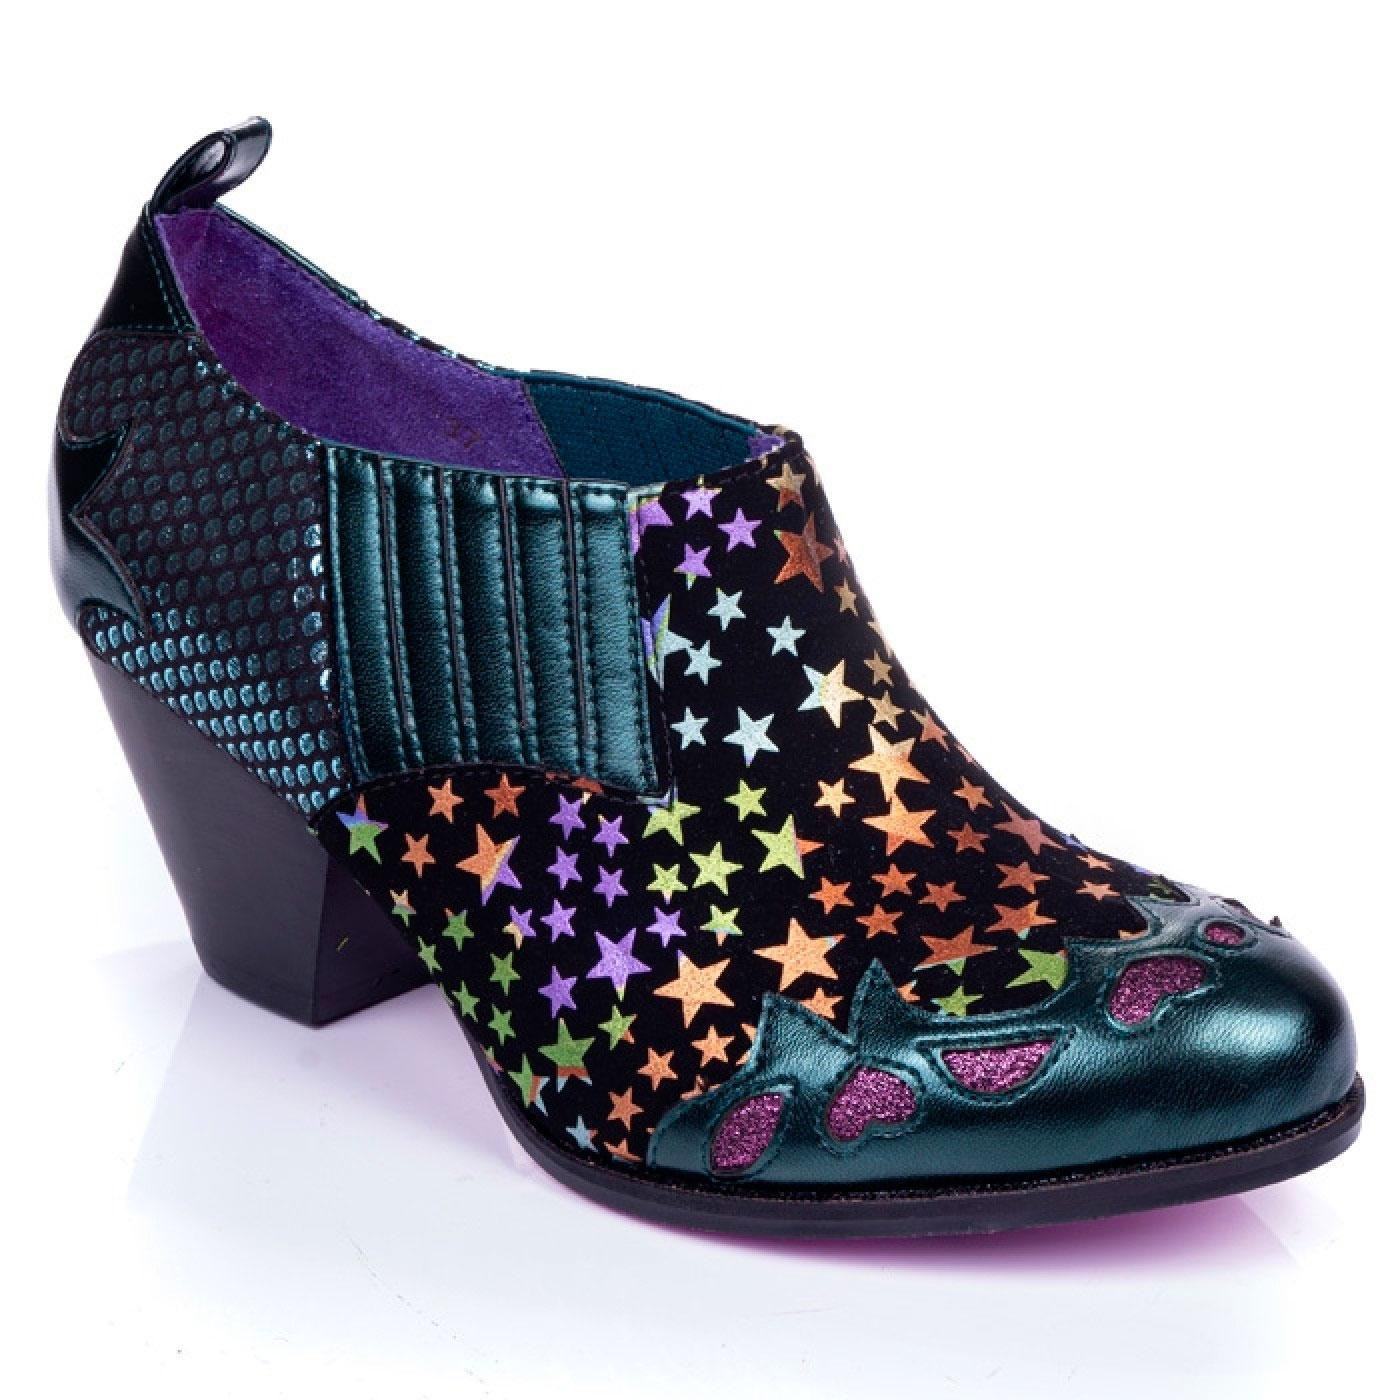 Barbarosa POETIC LICENCE Retro Star Heeled Boots